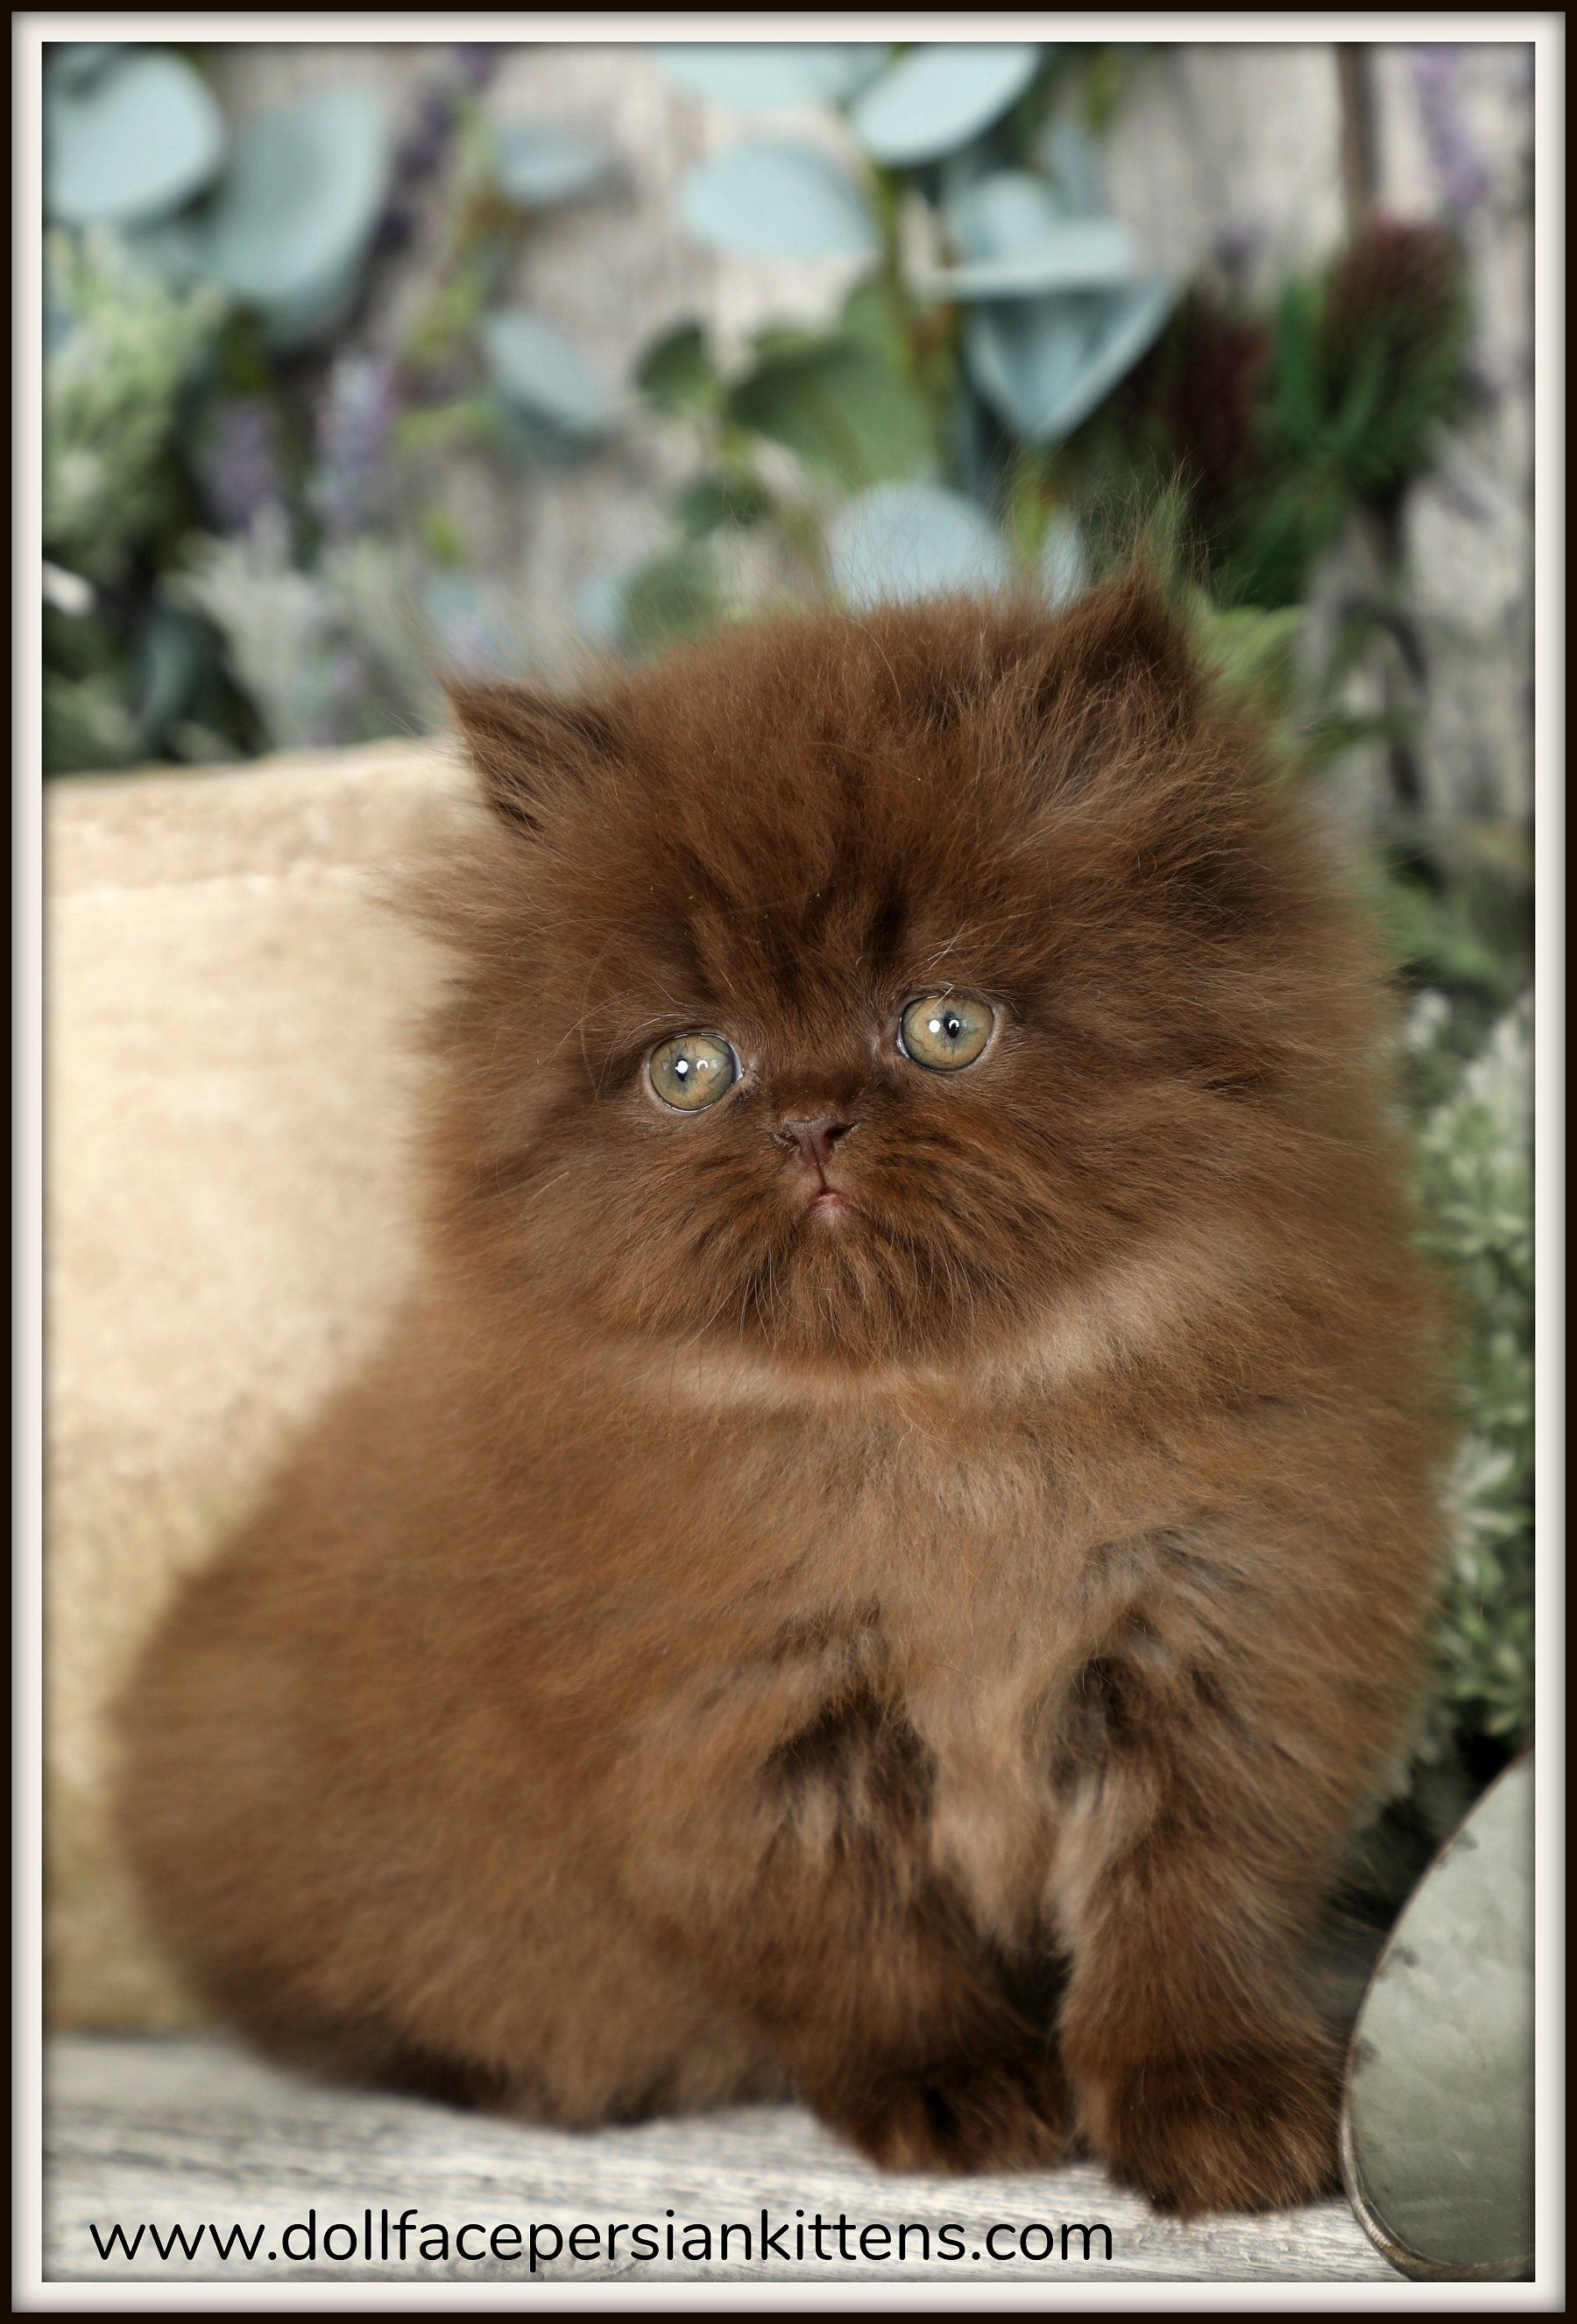 Doll Face Persian Kittens Chocolate Persian Kitten Persian Cat Doll Face Persian Kittens Kitten Pictures